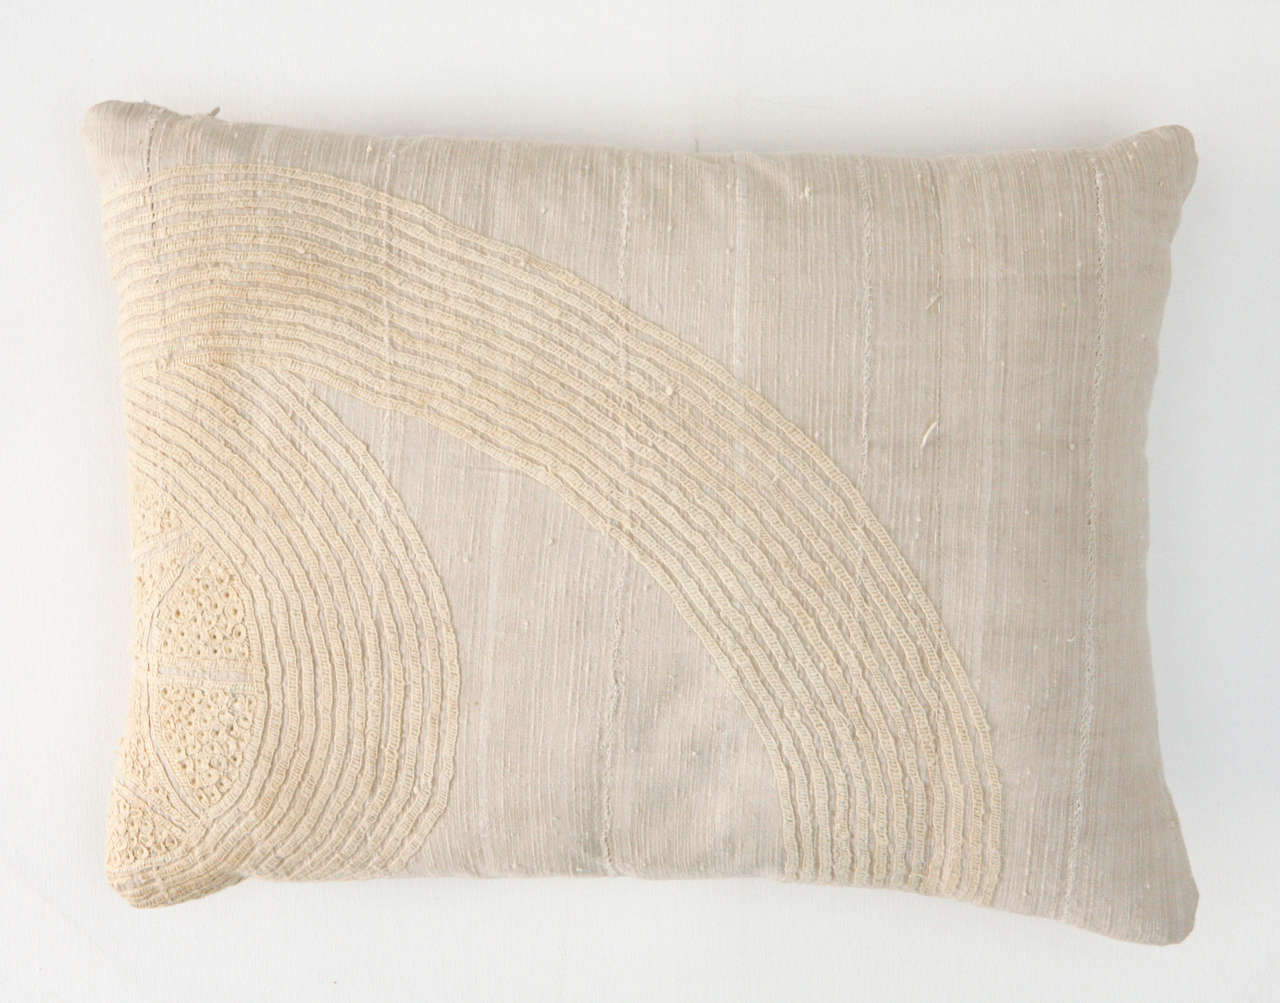 Furniture Fabric In Nigeria Nigerian African Textile Pillow At 1stdibs